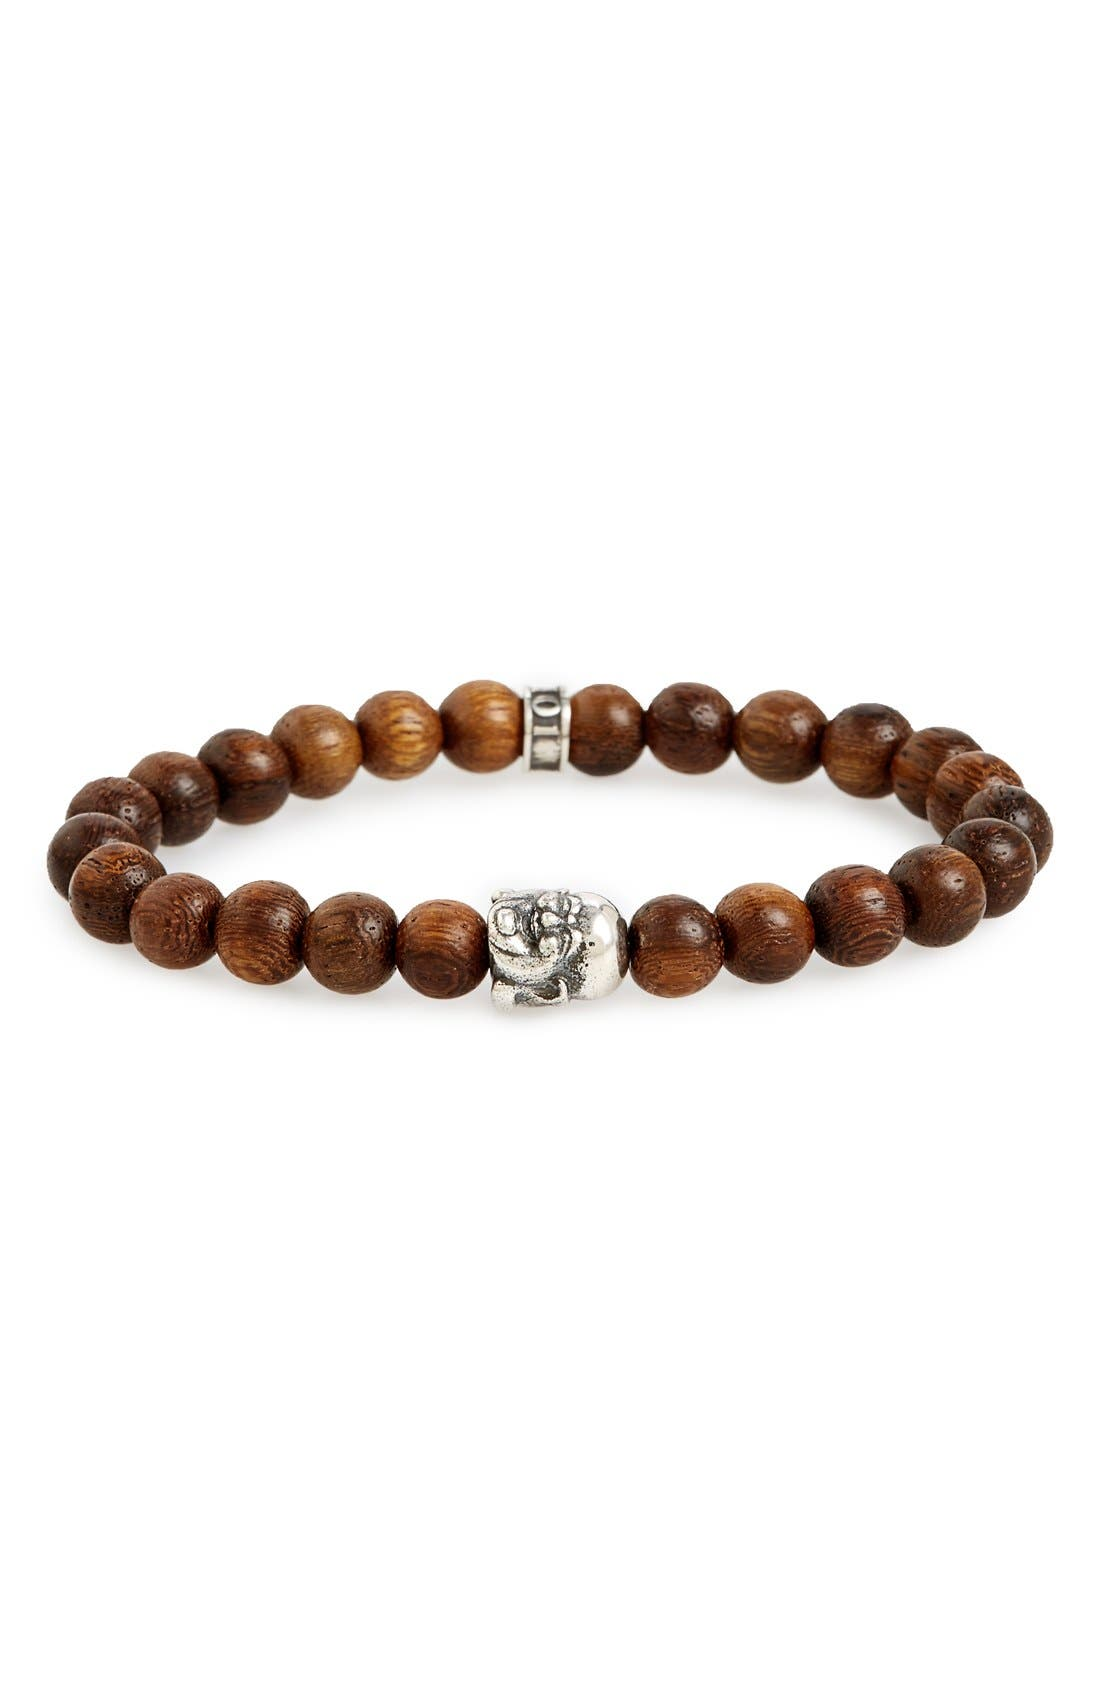 Room101 Wood Buddha Bead Bracelet